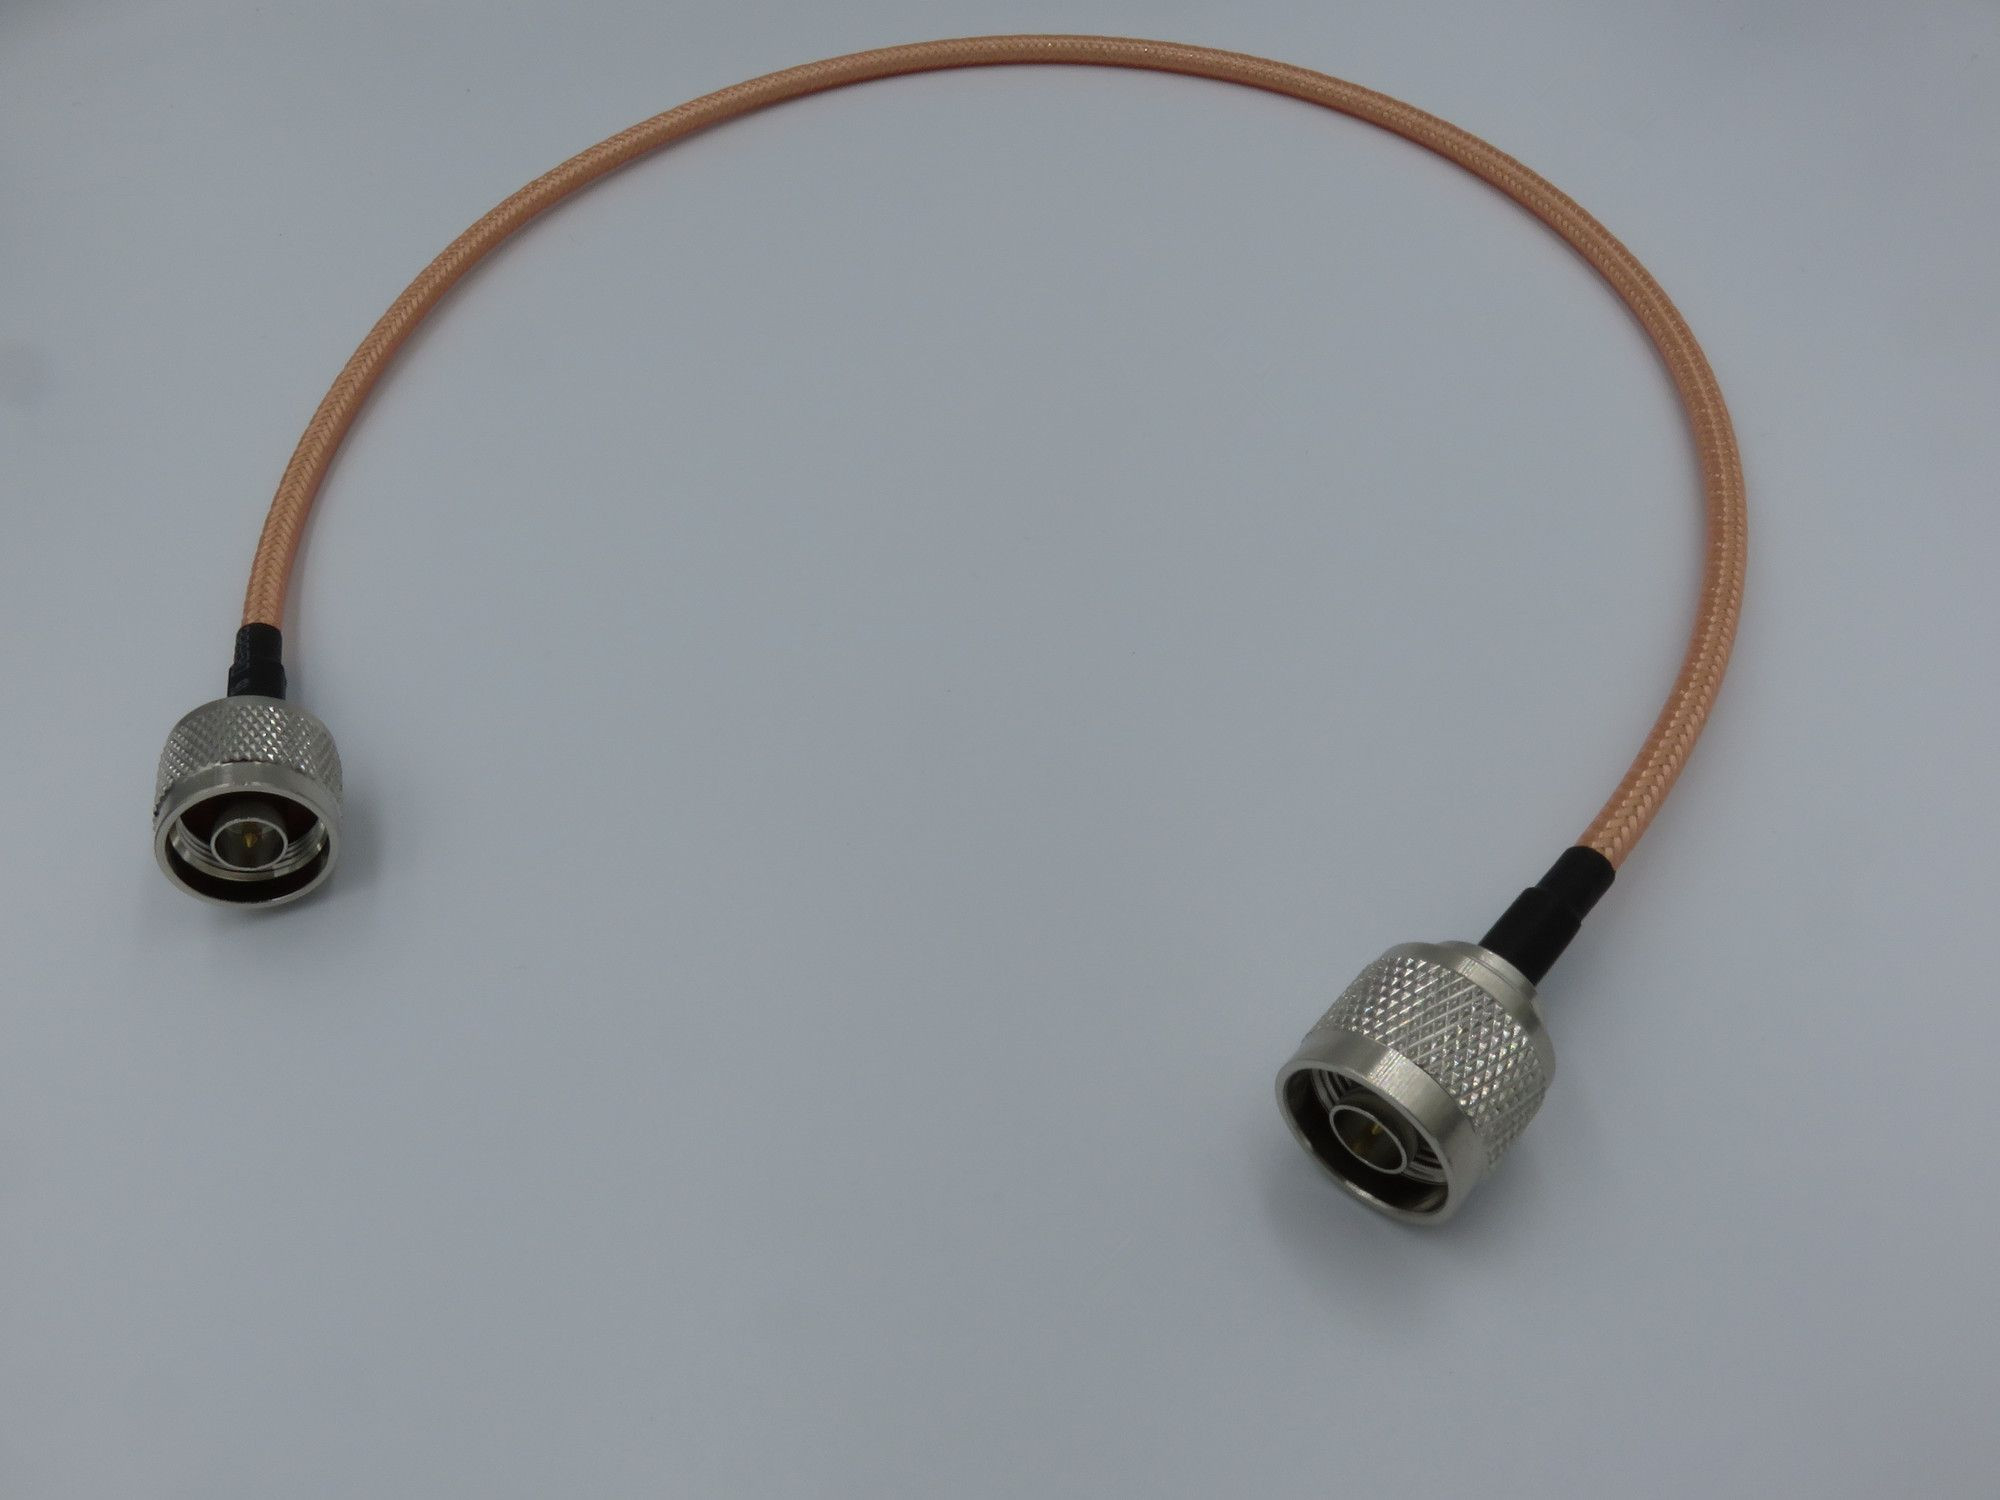 RF coaxial 500mm RG142 jumper cable assembly with N male crimp and N male crimp connectors